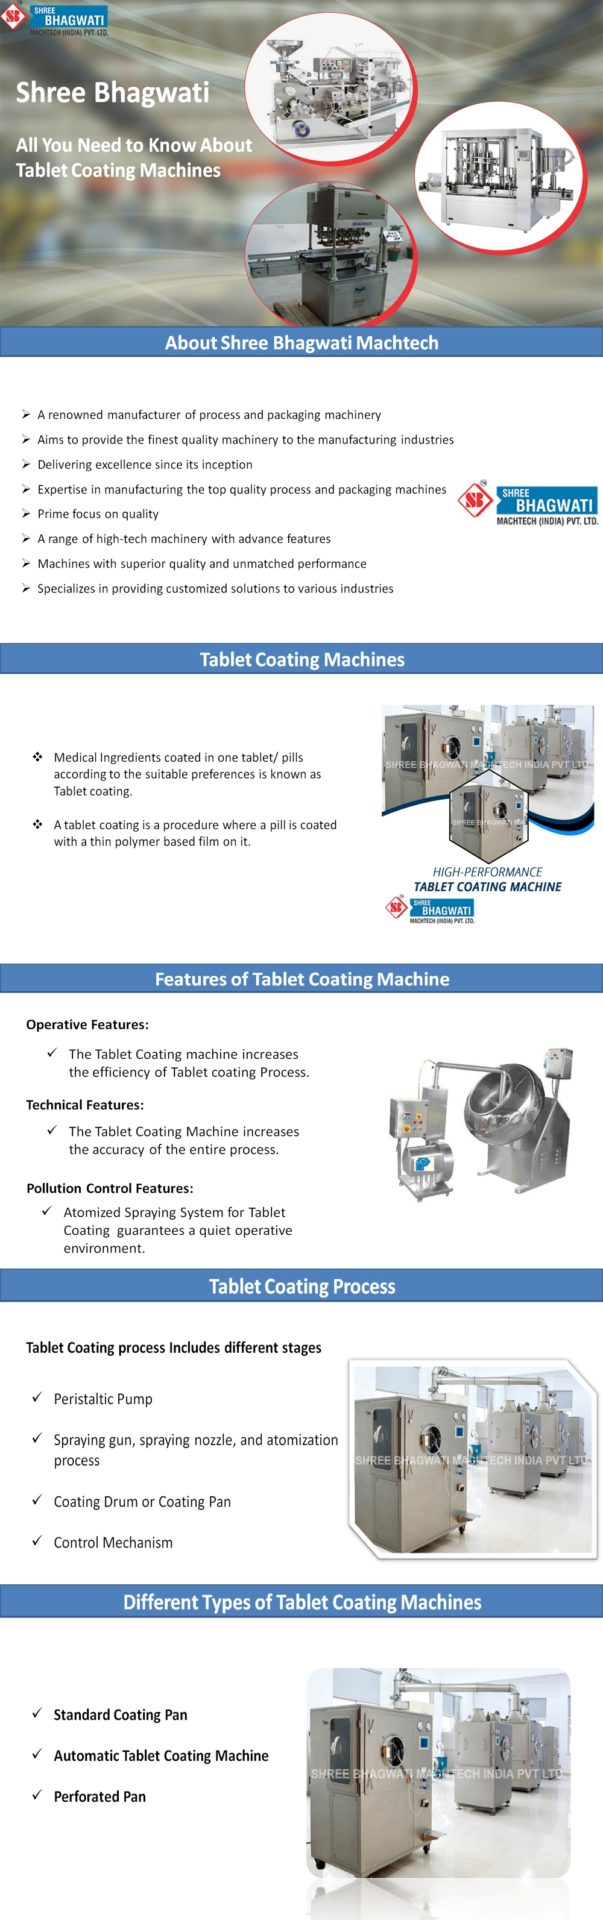 All you need to know about tablet coating machines